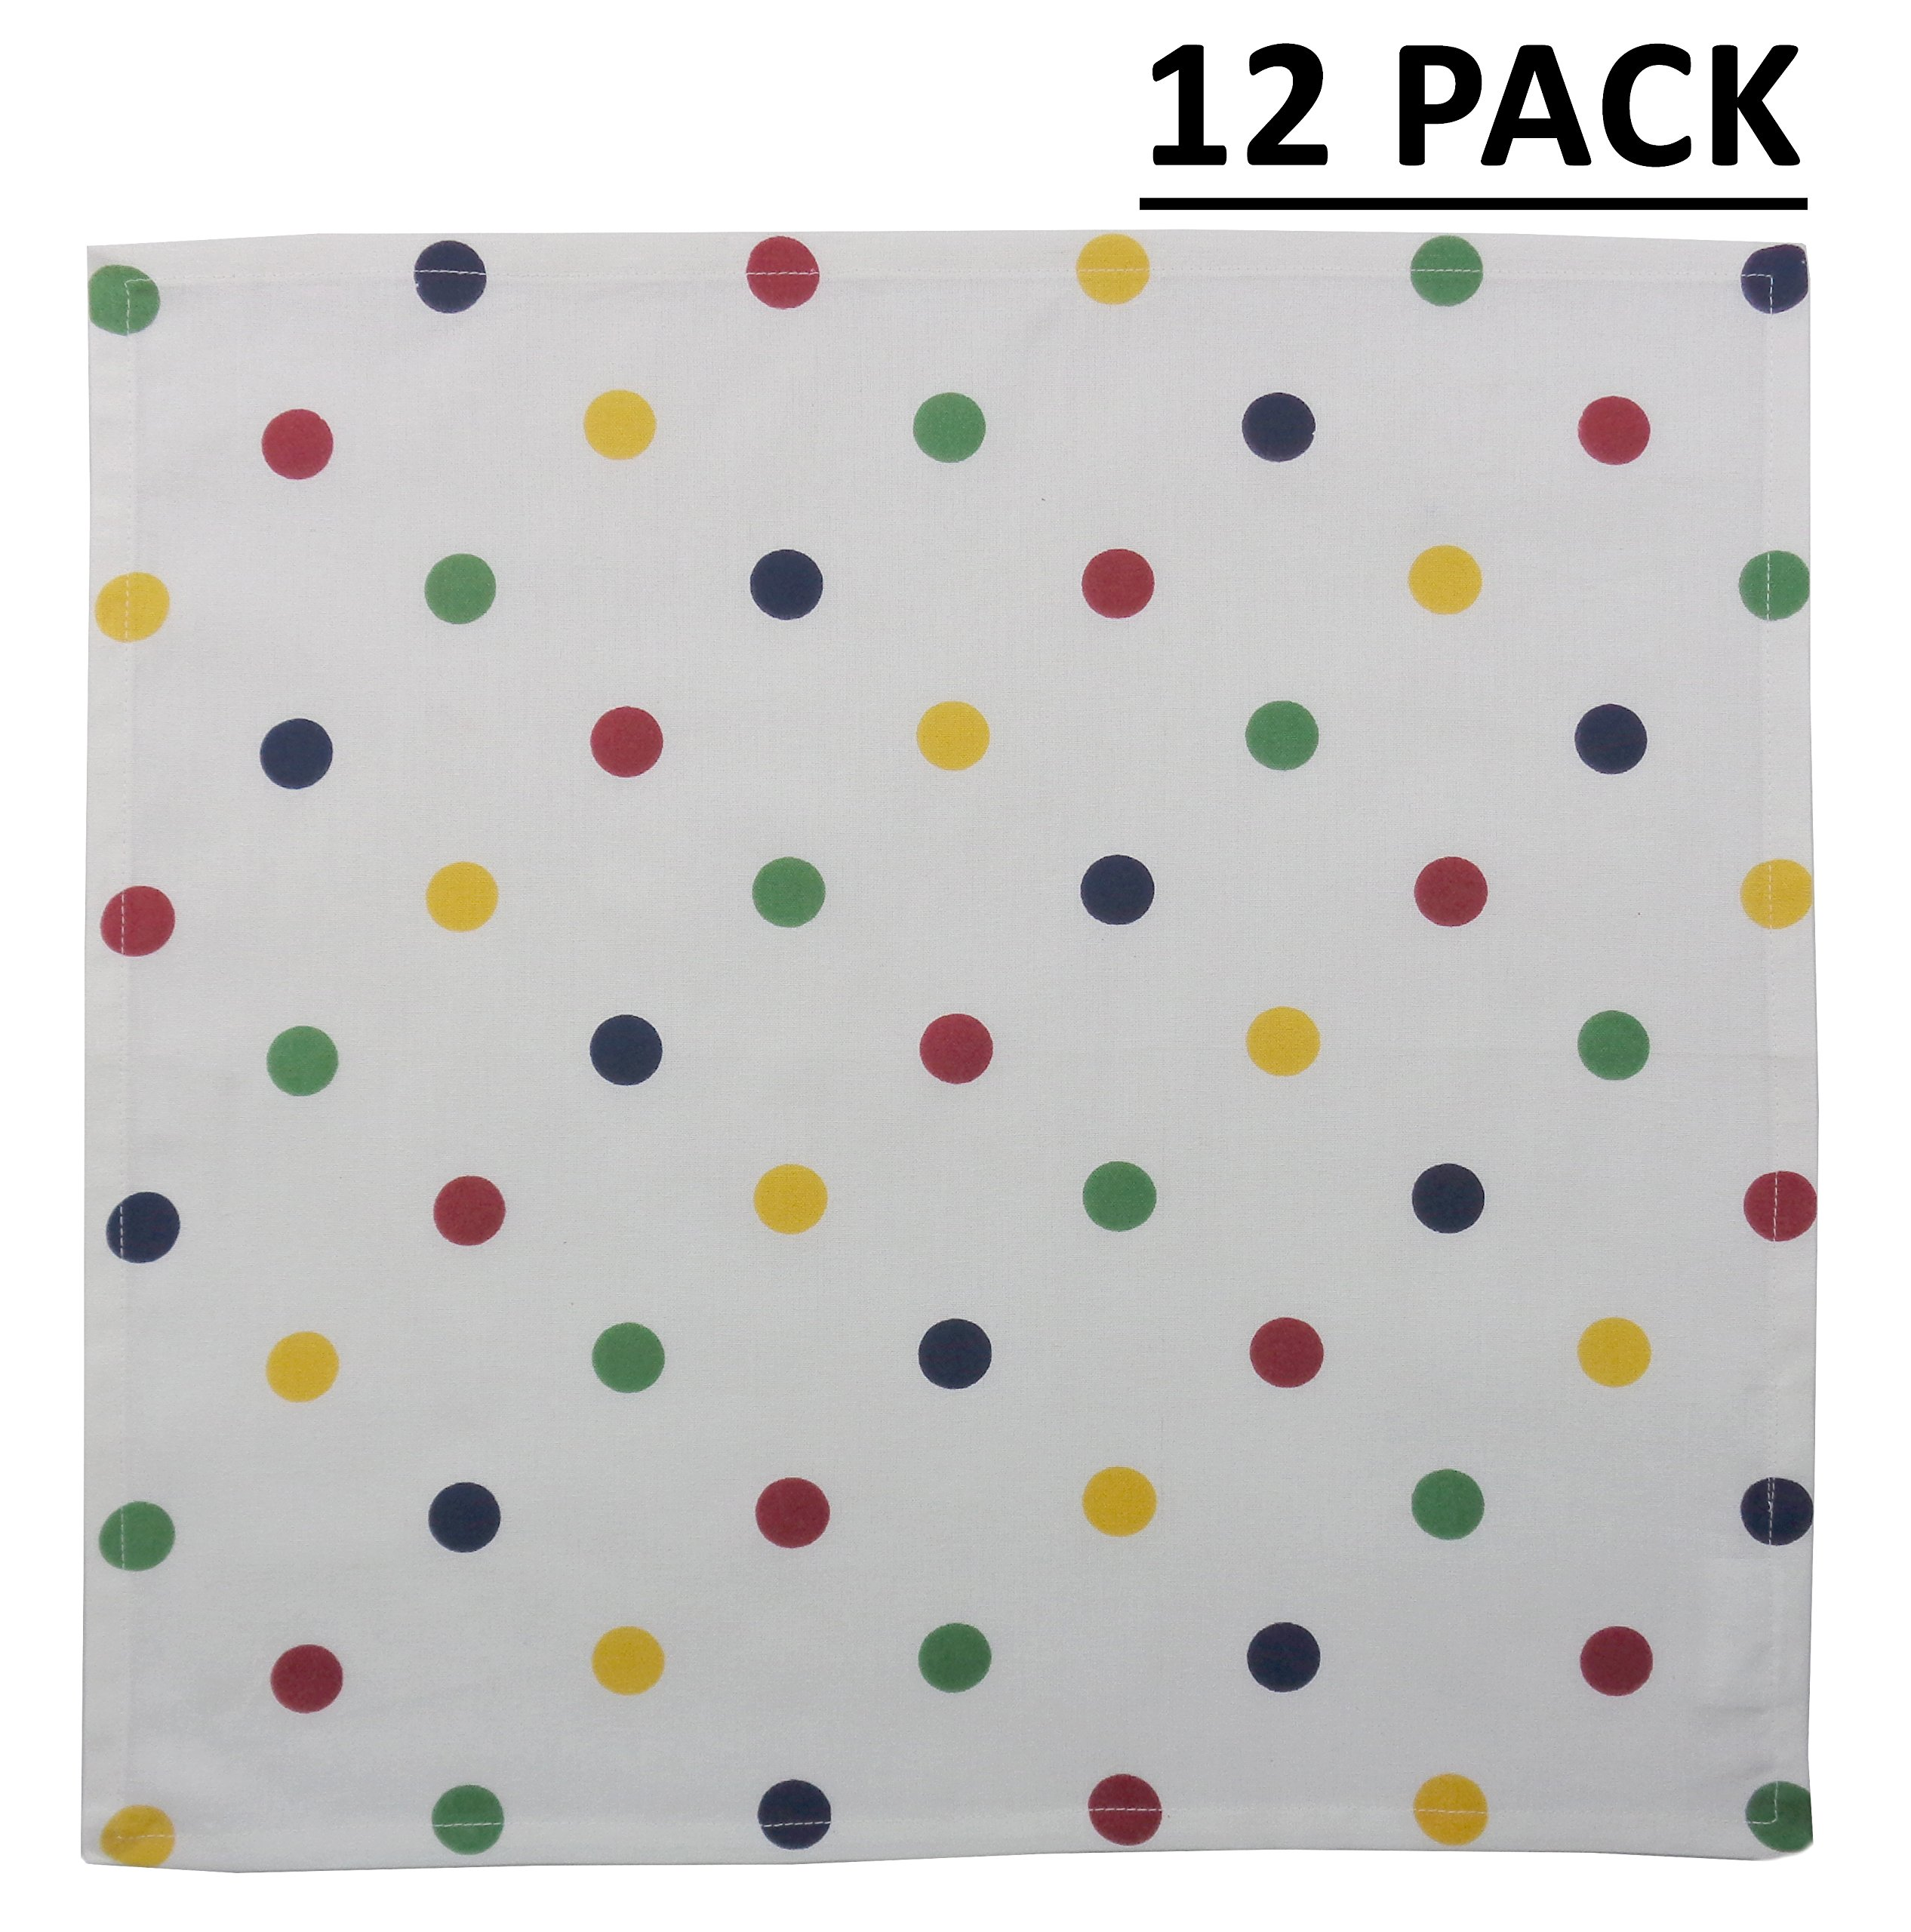 Cotton Craft - 12 Pack Confetti Multi Dot Oversized Dinner Napkins - Size 20x20-100% Cotton - Colorful & Playful Dots brighten your dinner setting - Tailored mitered corners and a generous hem